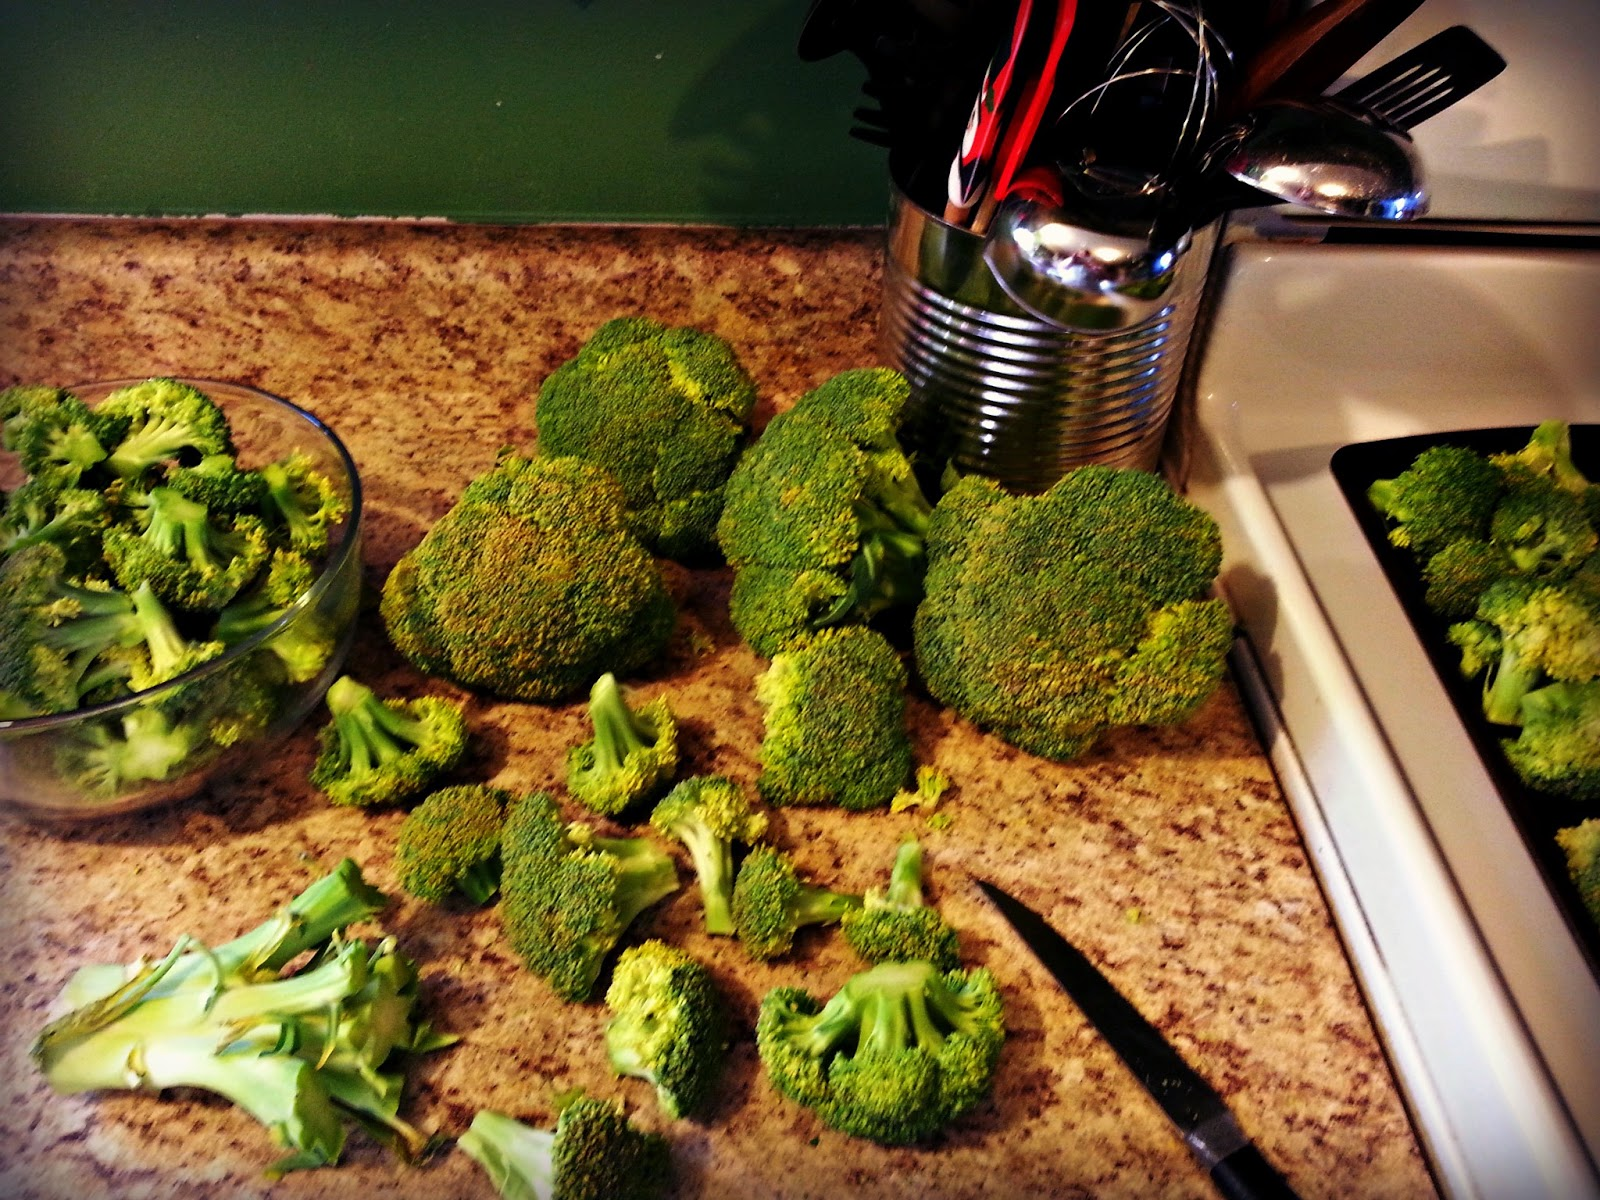 Bake and Freeze Broccoli at Home to Save $$$...